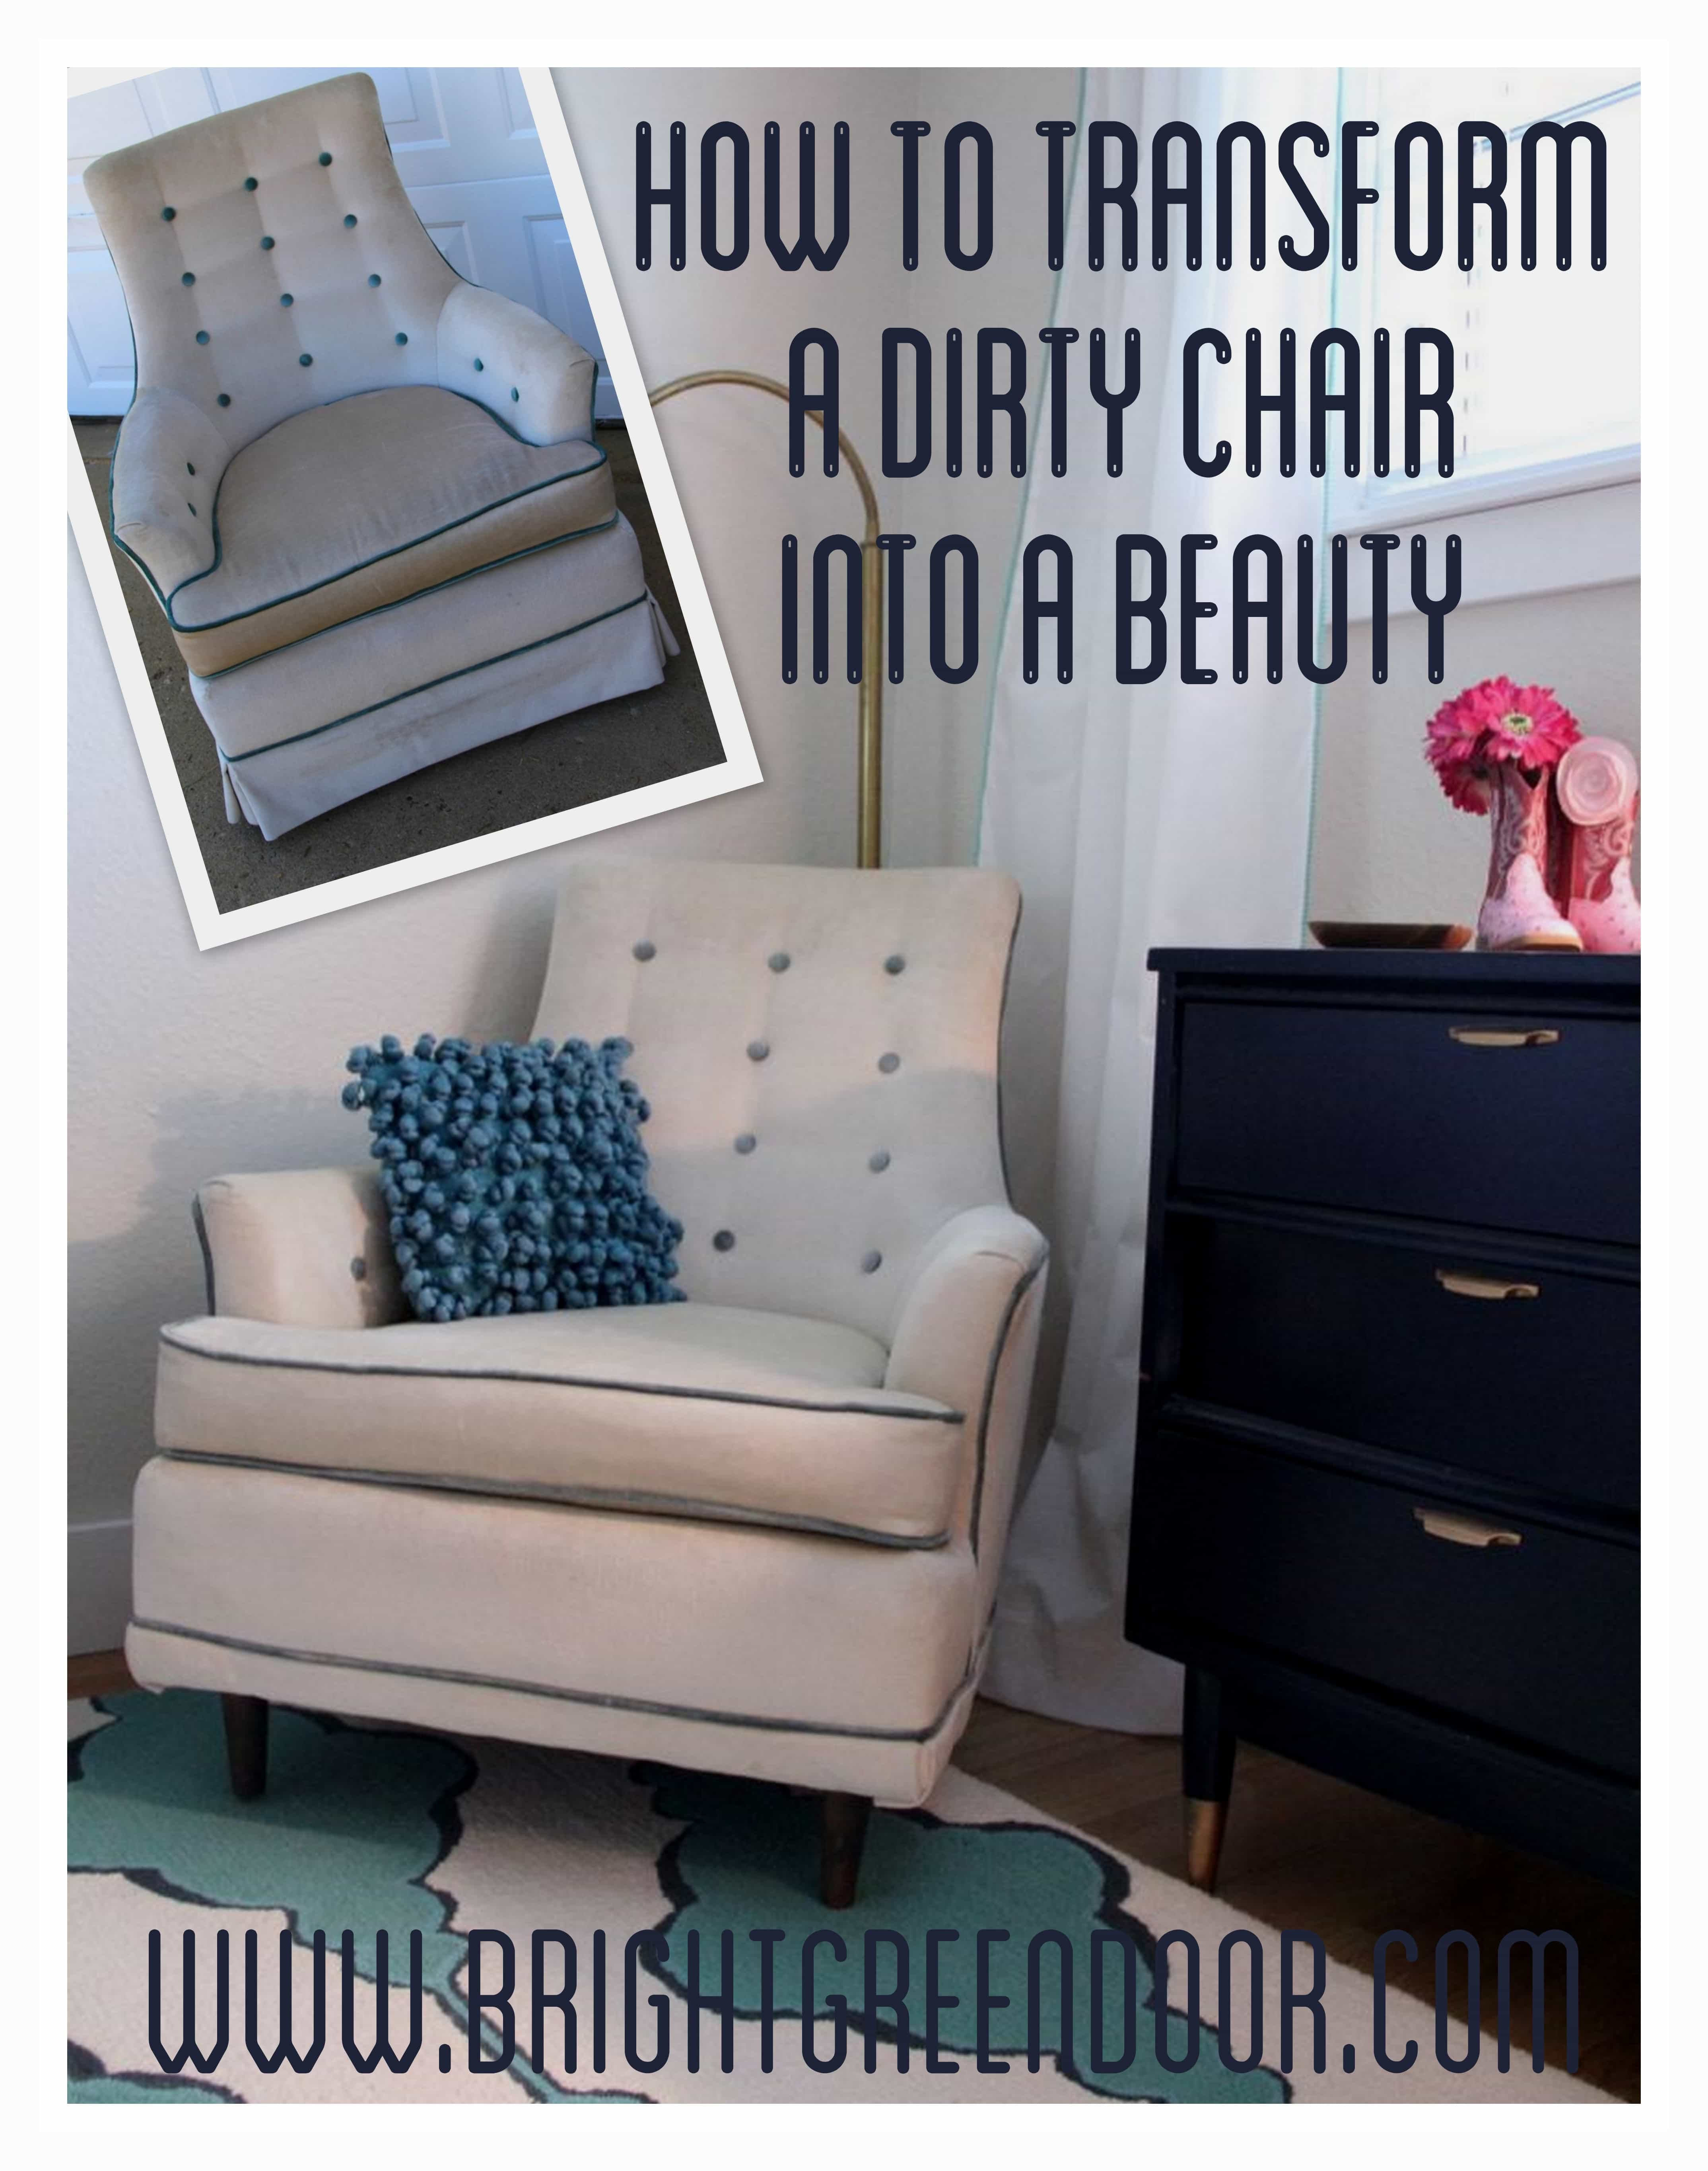 Chair Transformation- Turning a Dirty Chair into a Beauty